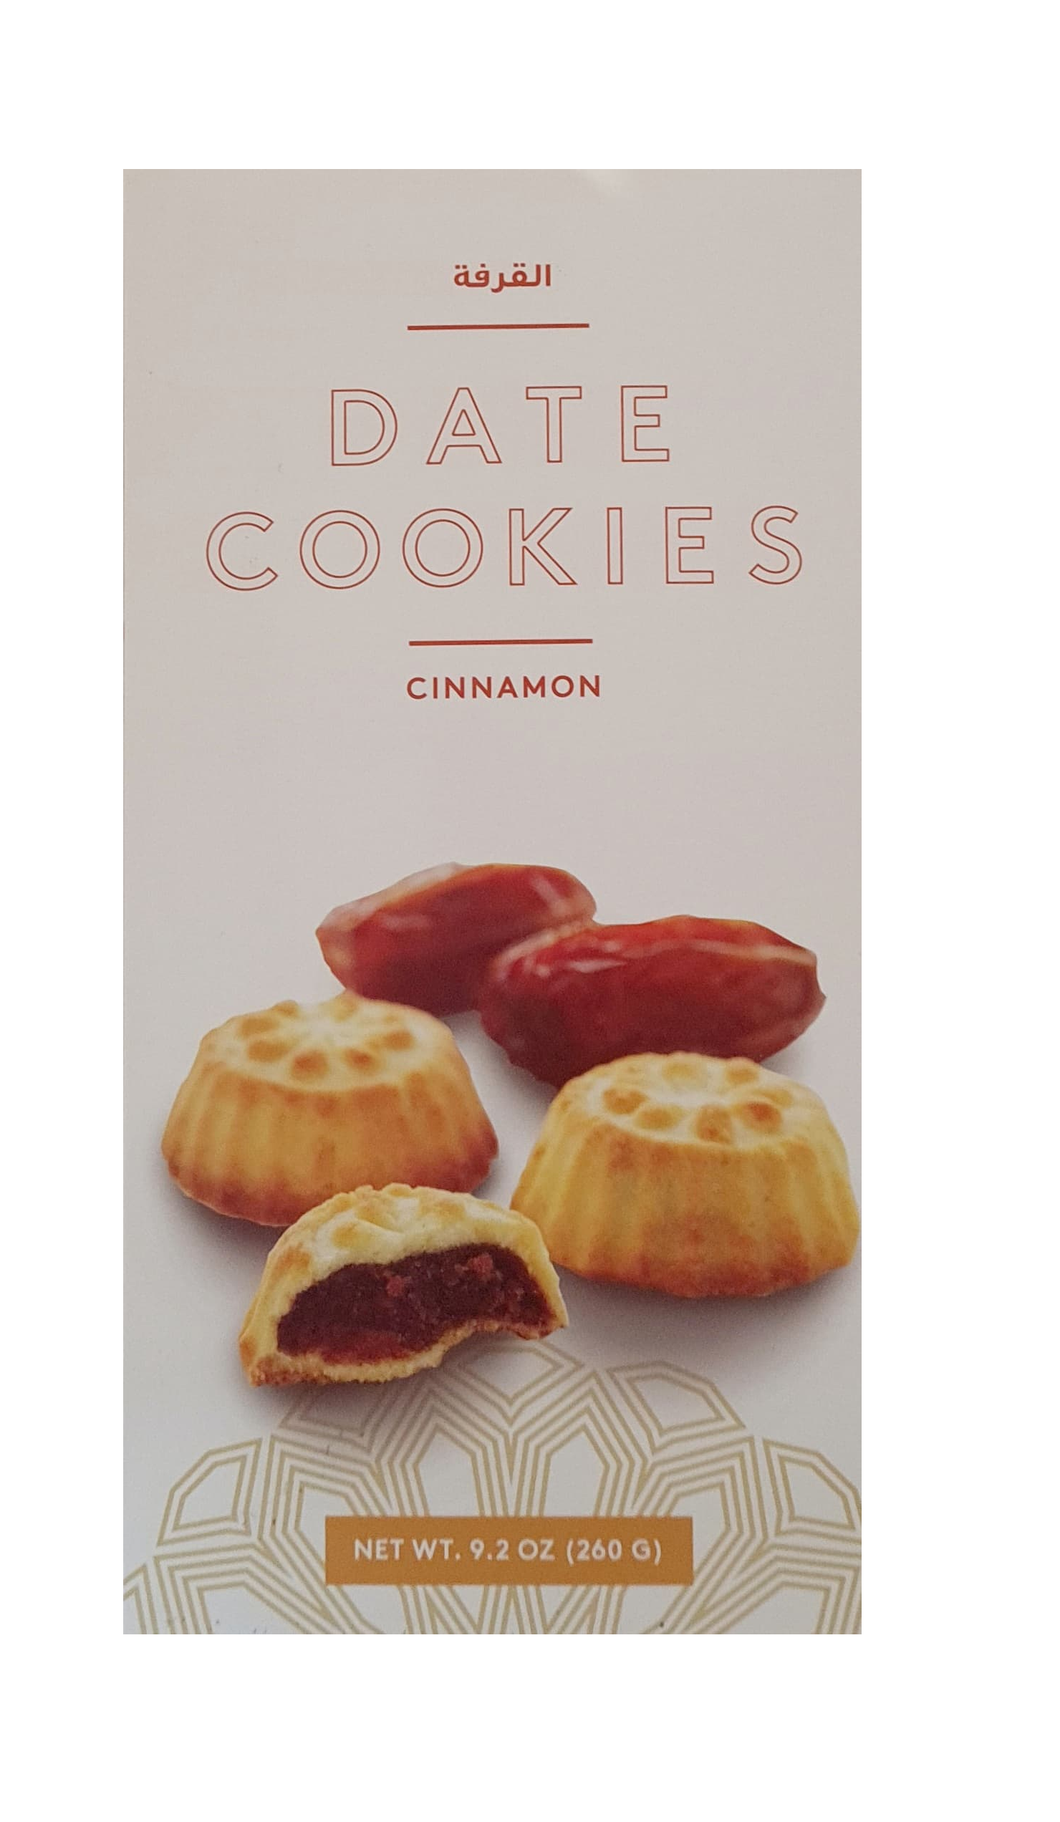 Dates cookies Cinnamon 260g